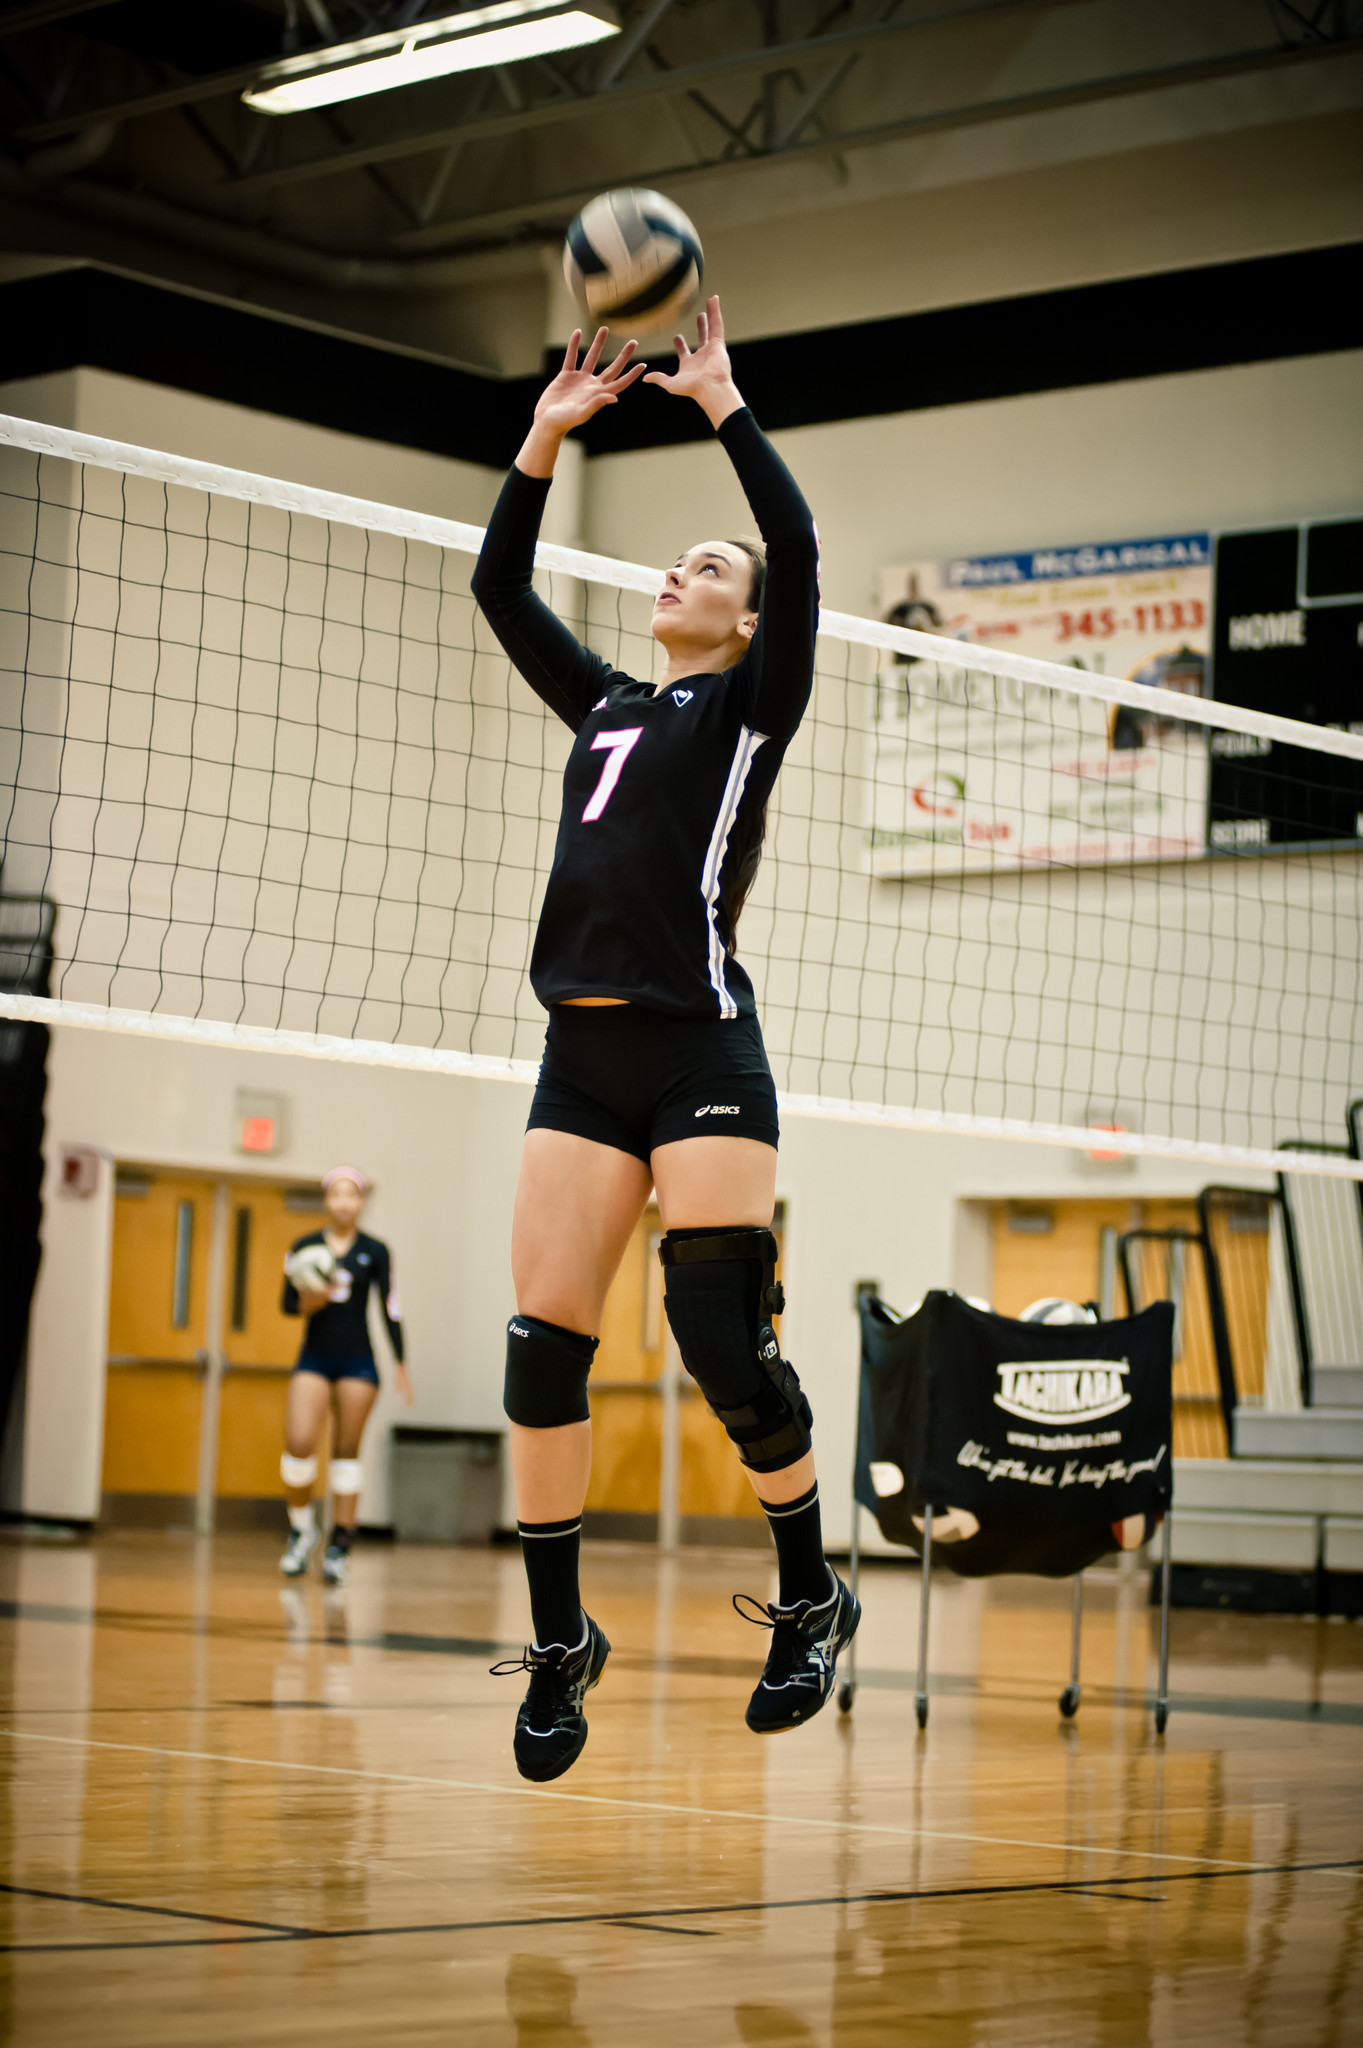 Olympia Setter Returns To Competition After Year Long